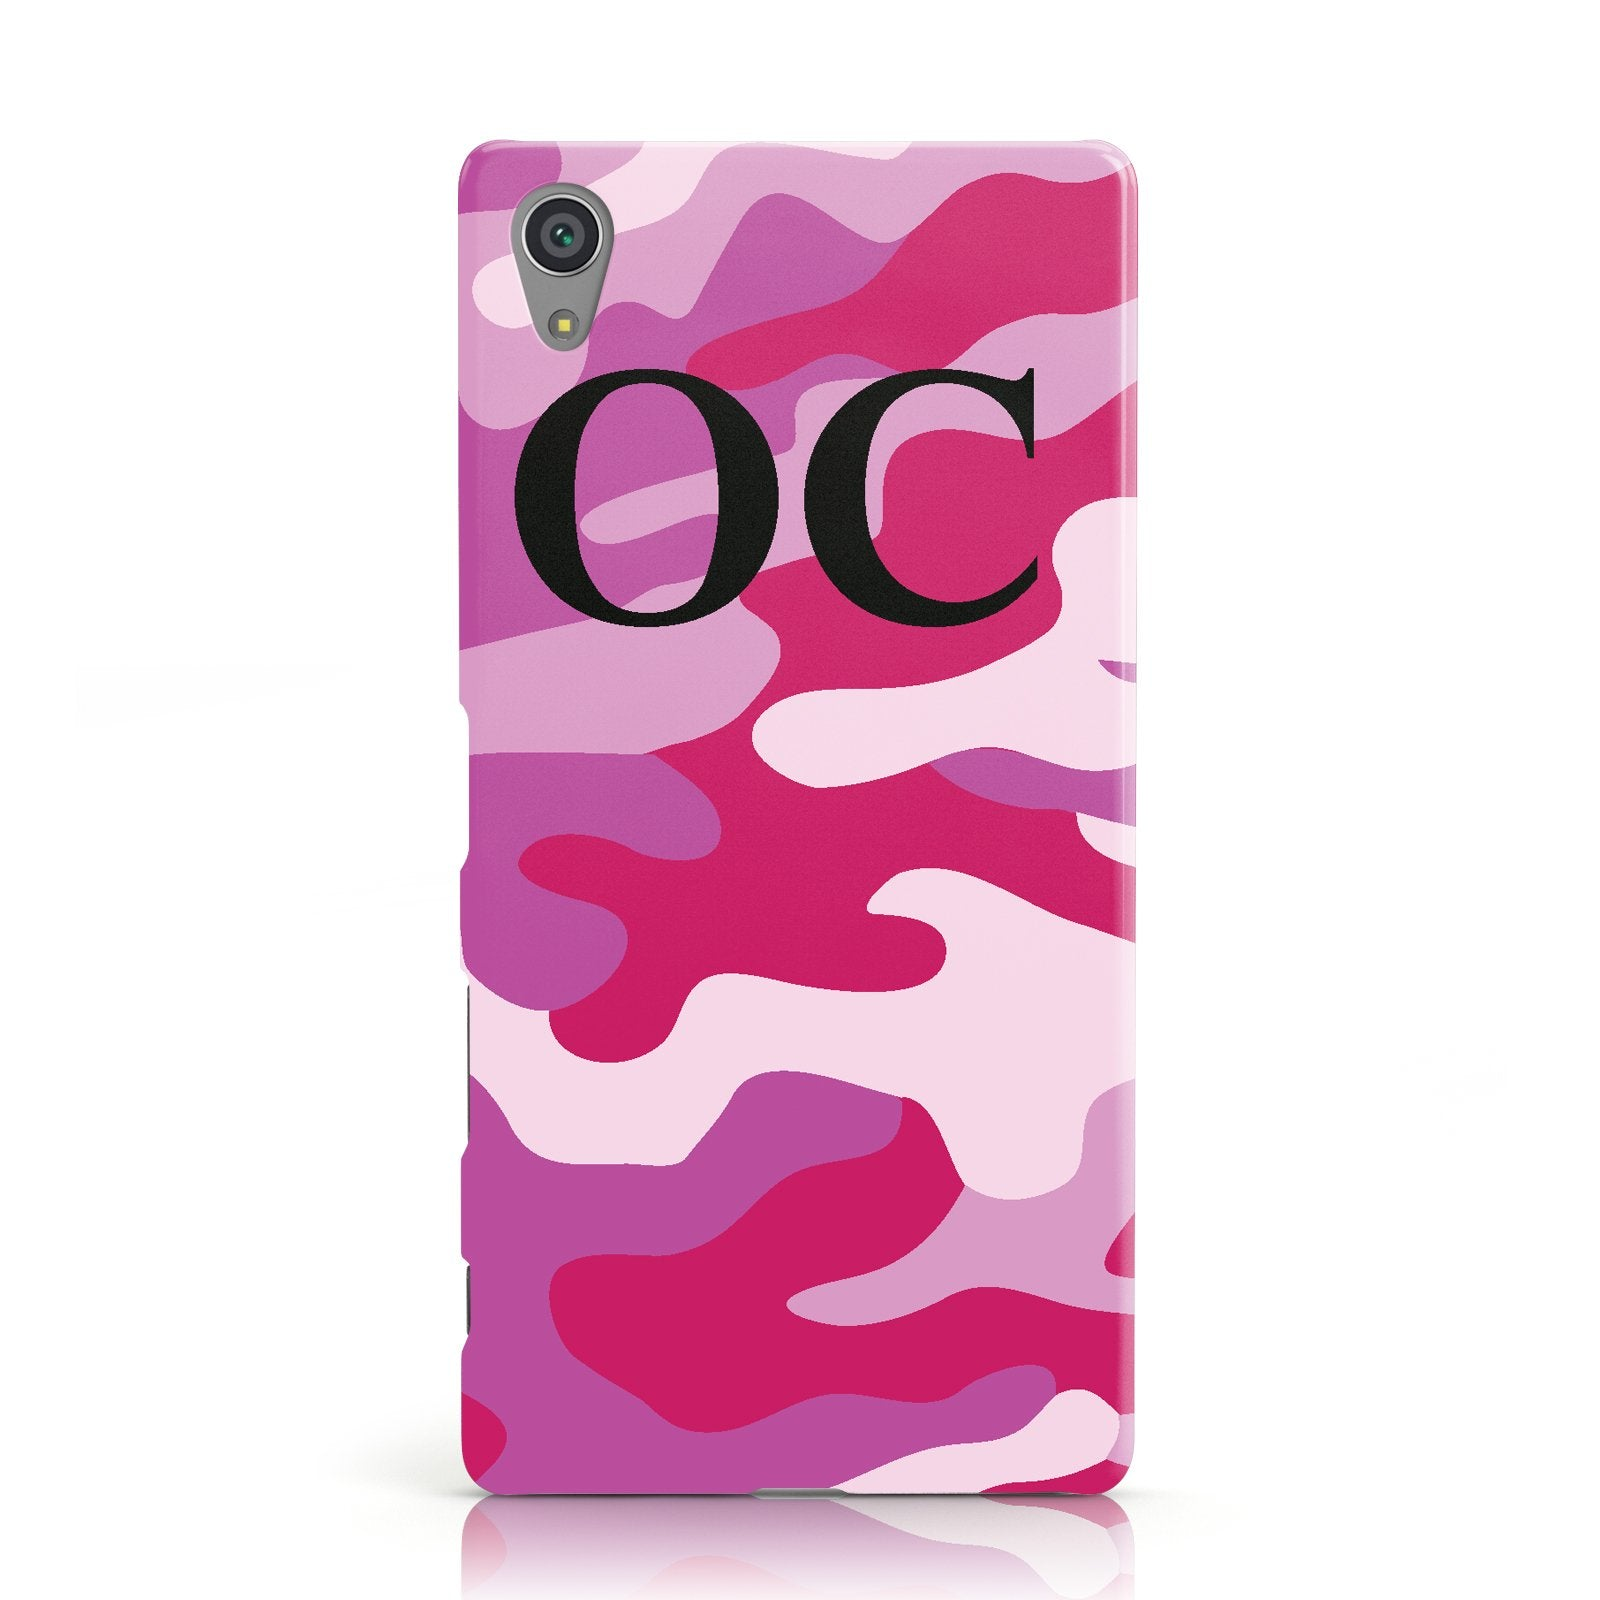 Camouflage Personalised Sony Xperia Case